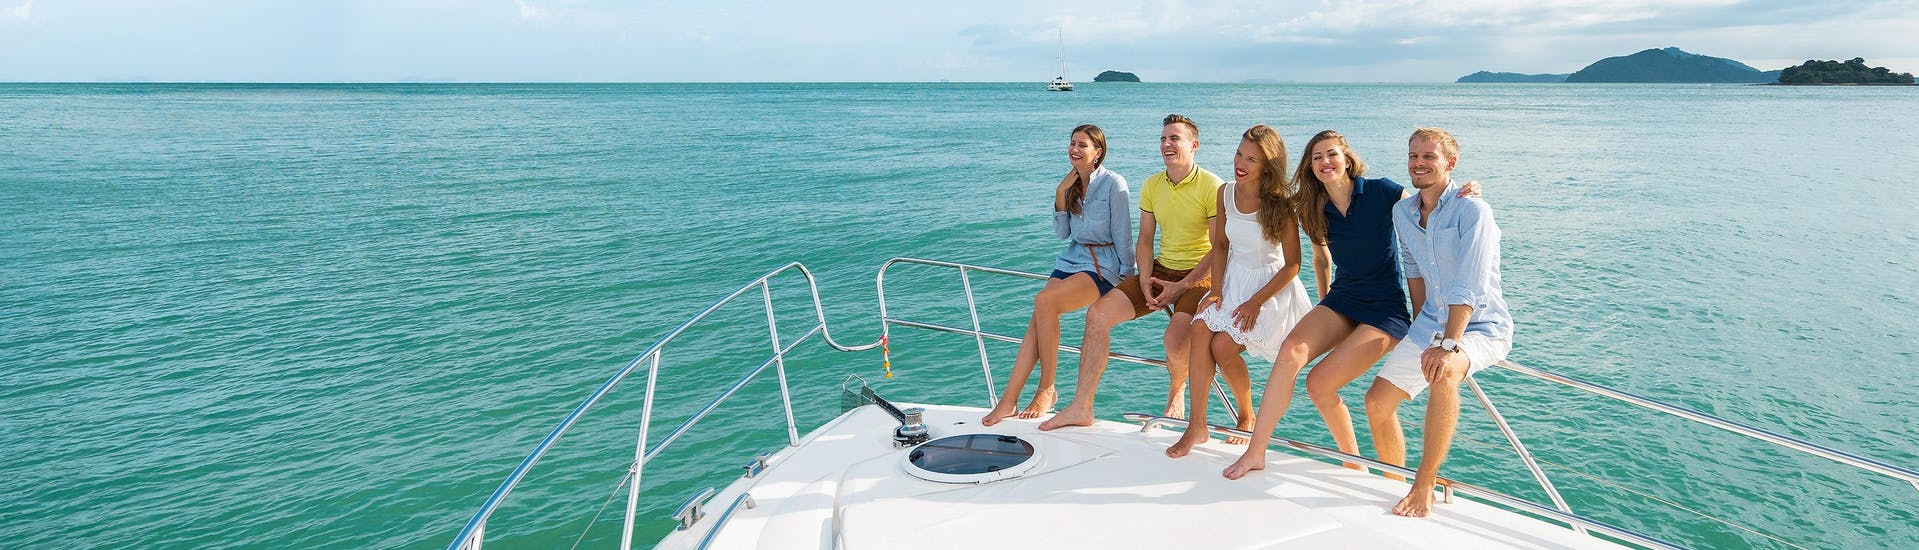 A group of friends relaxing on a boat trip in the holiday destination of Queensland.